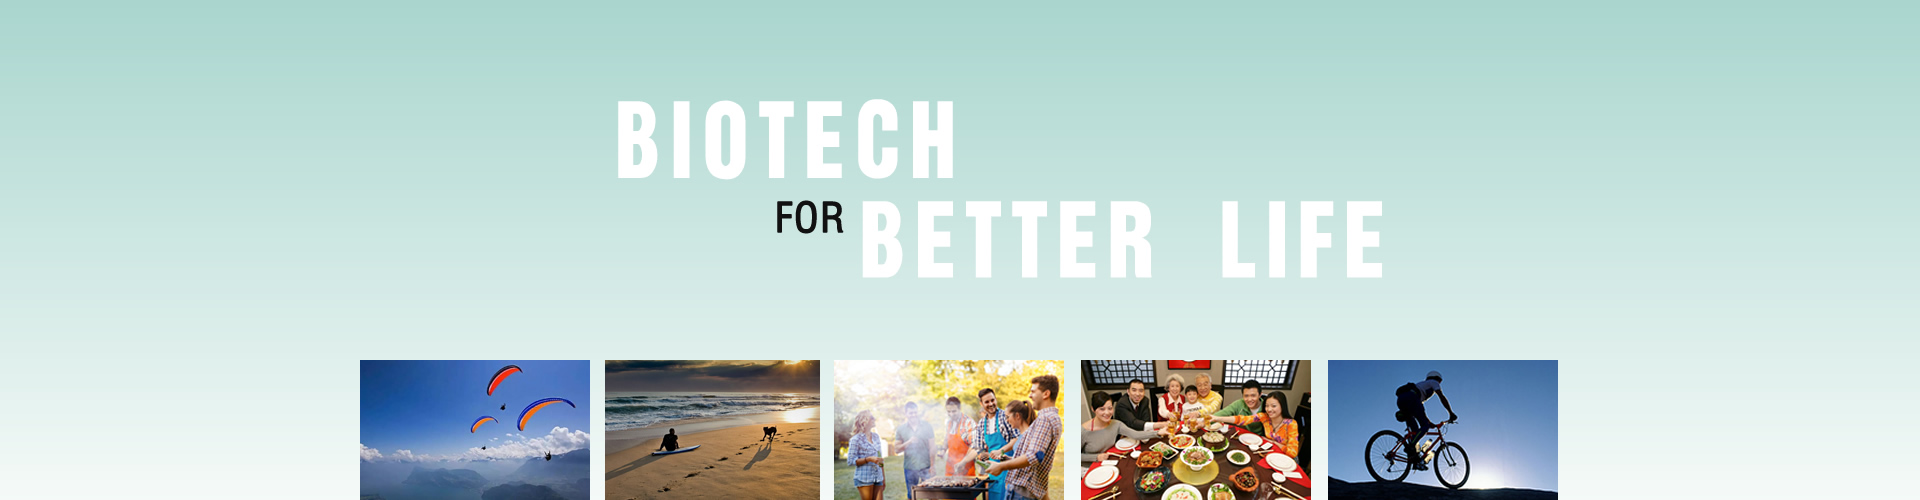 Biotech for better life